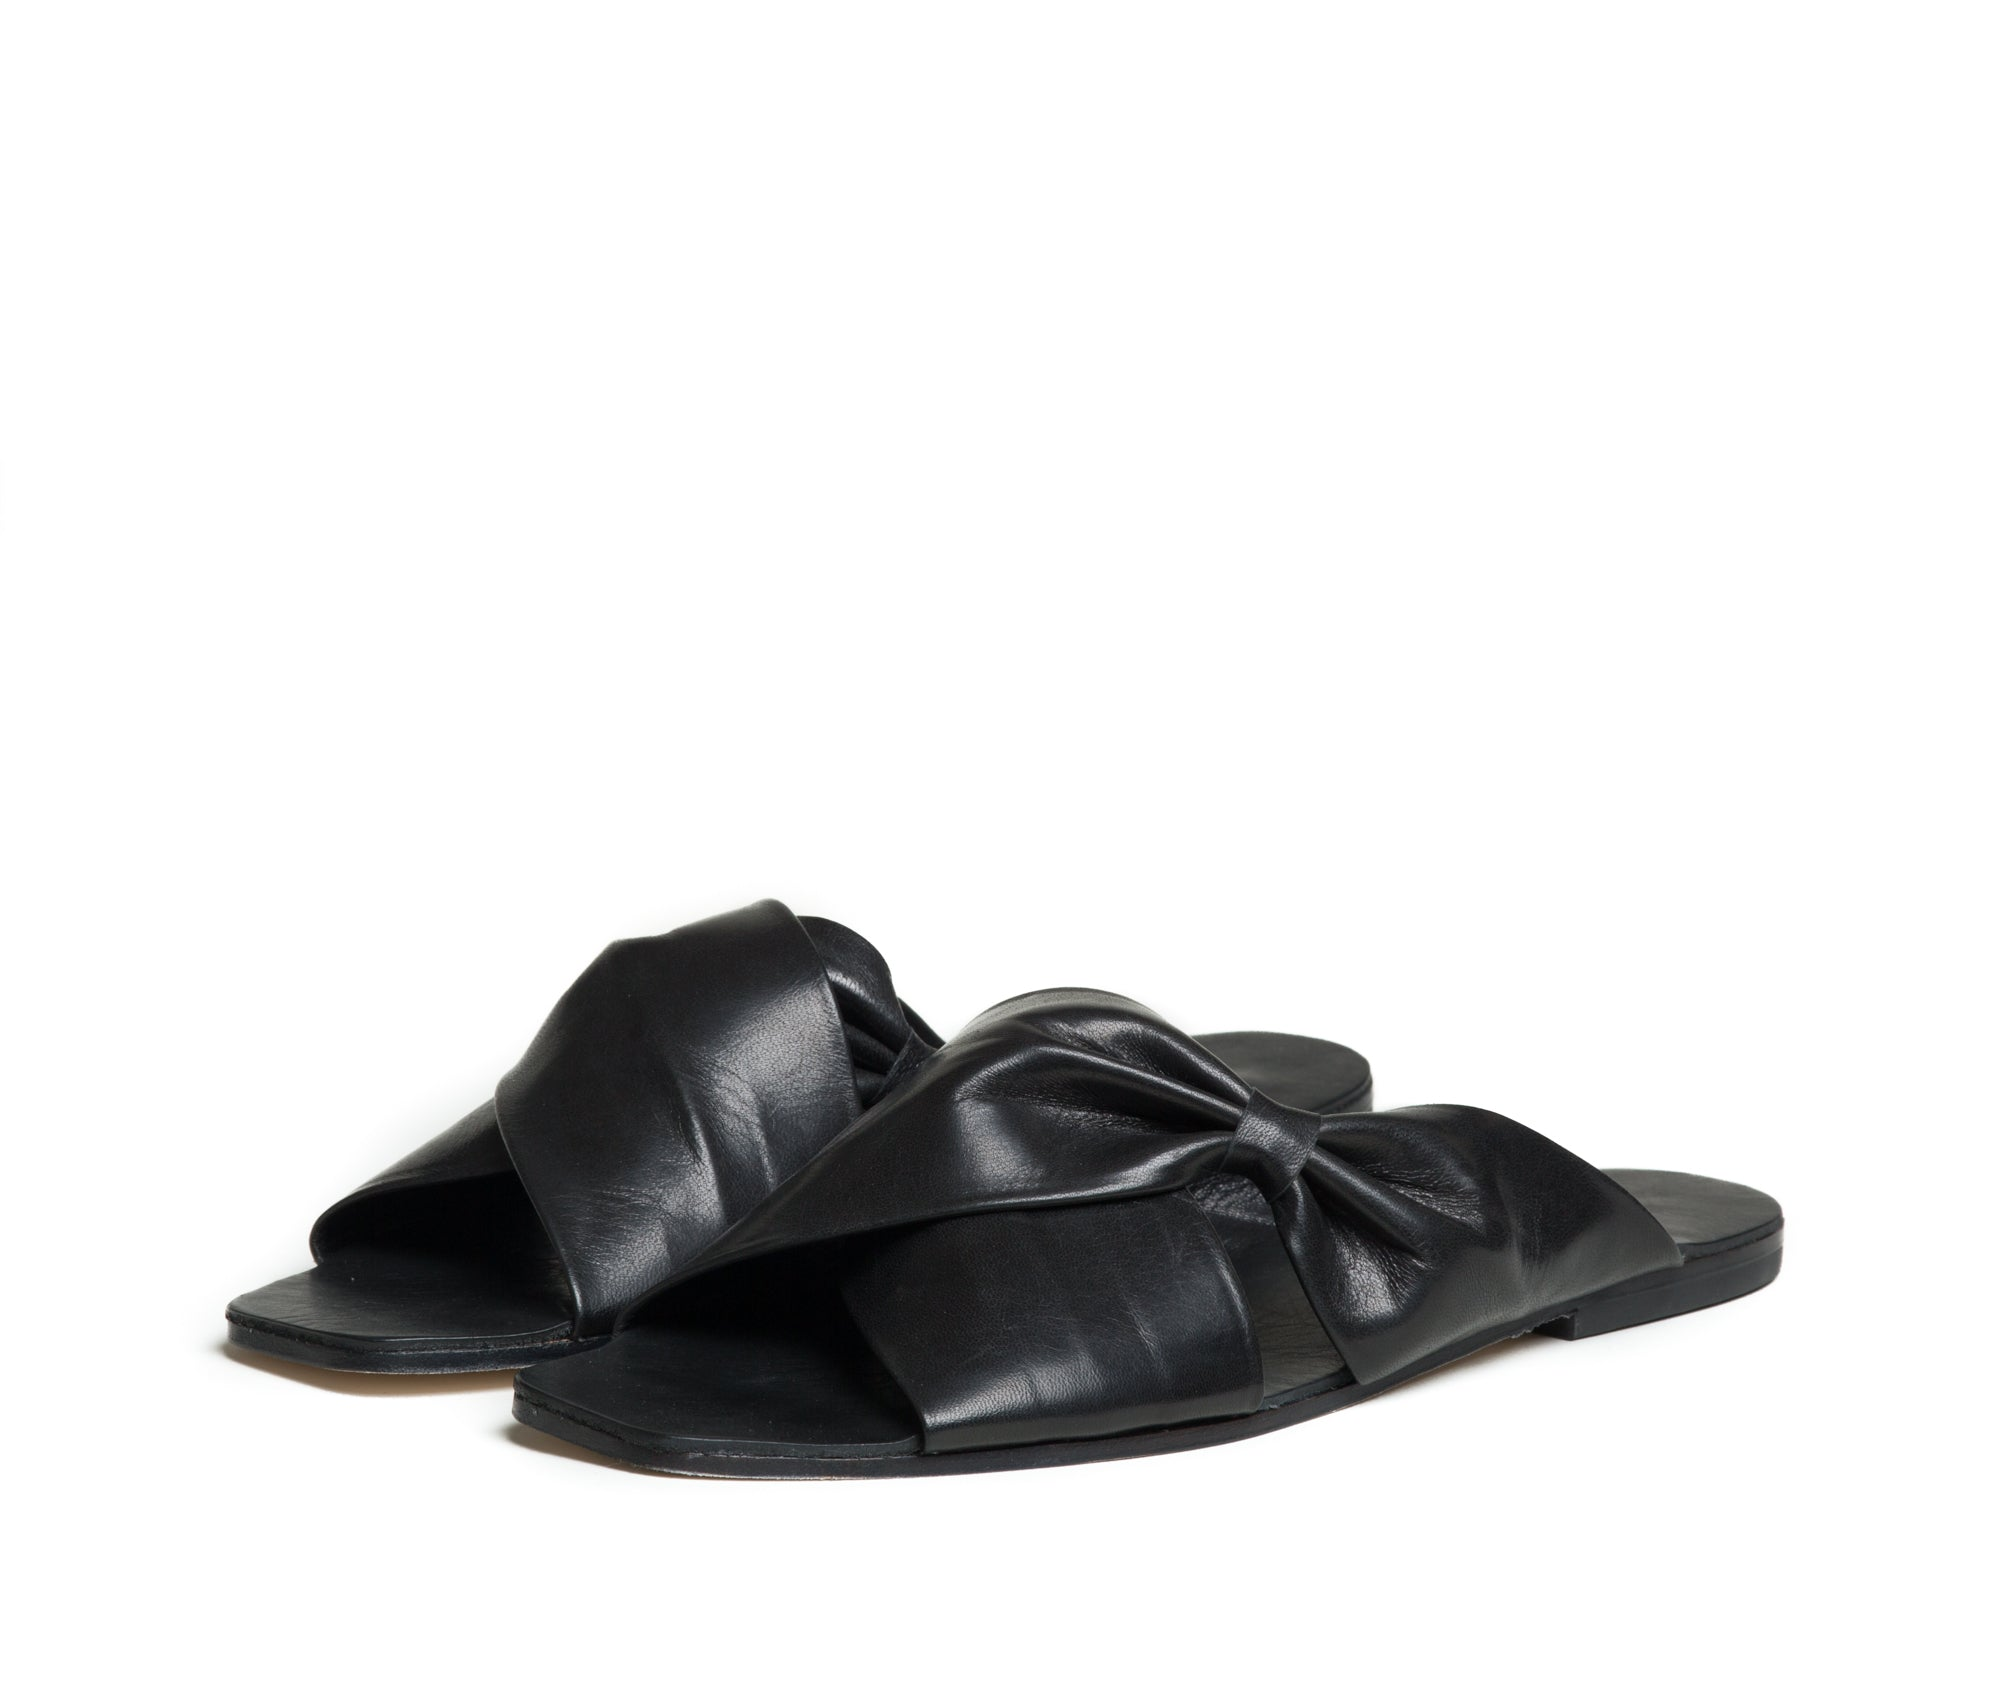 a702cf6abe theca gathered cross band slide sandal - black smooth leather – the ...